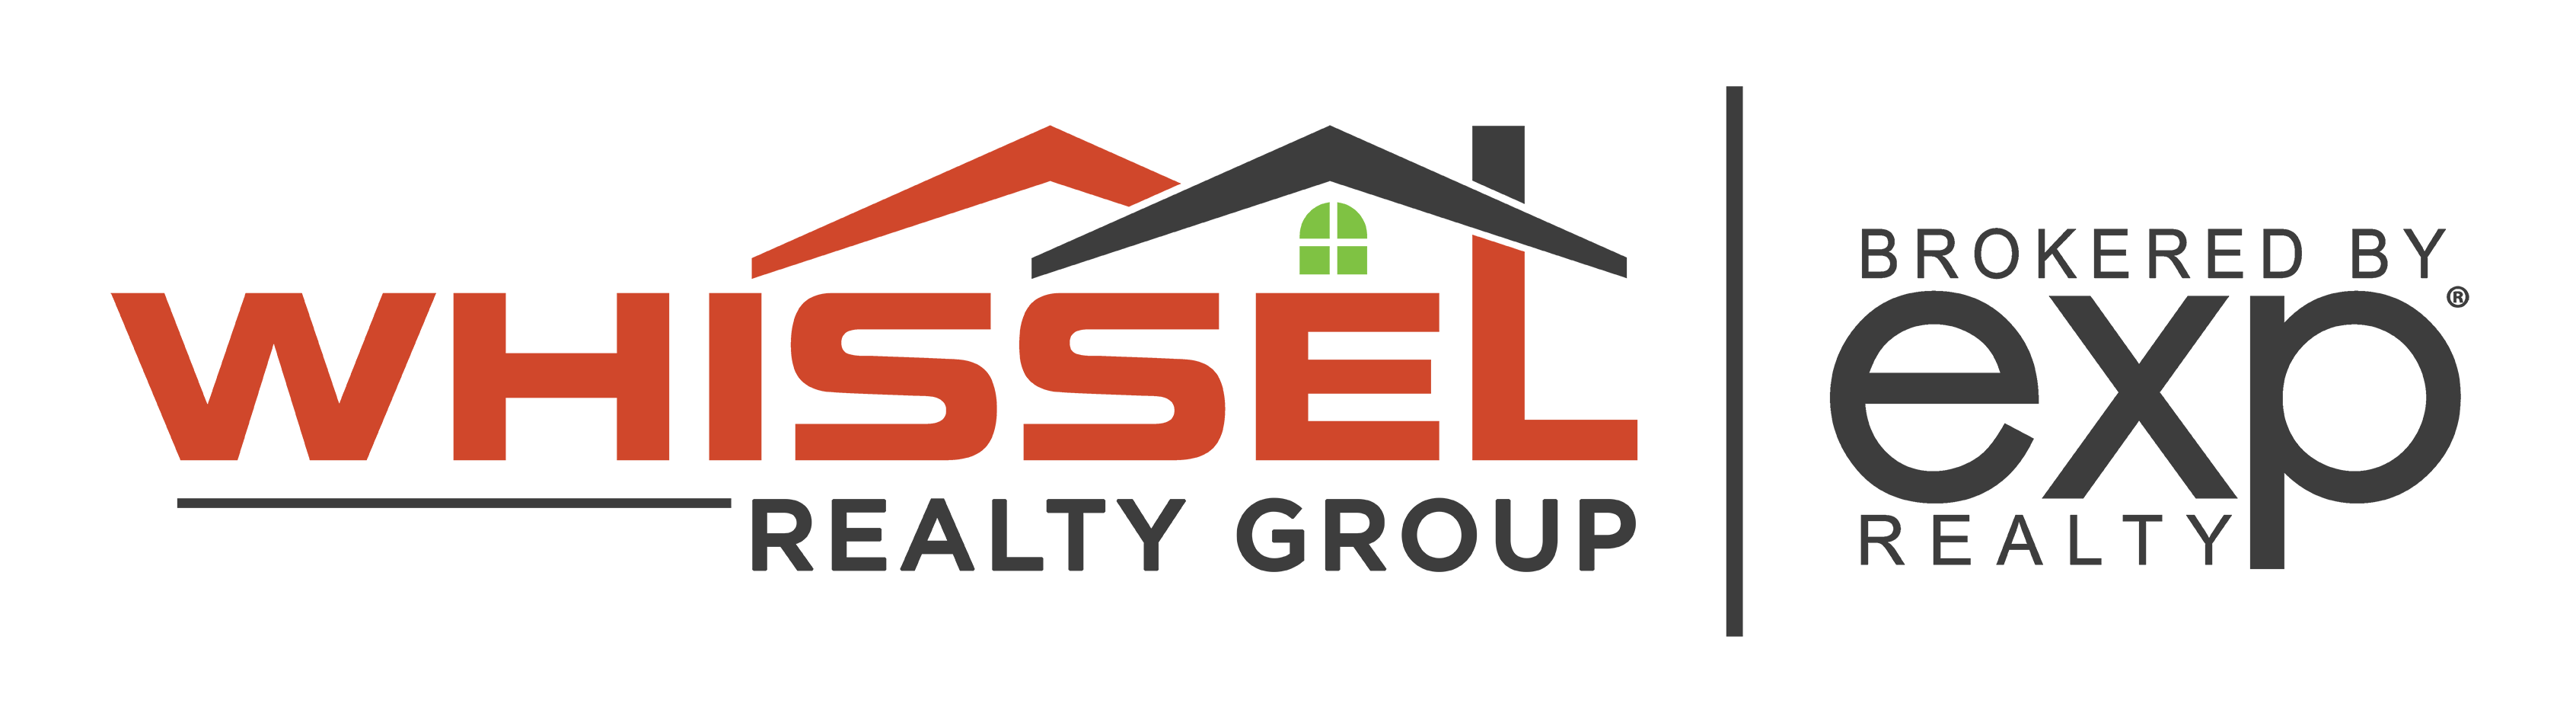 Whissel Realty Group logo